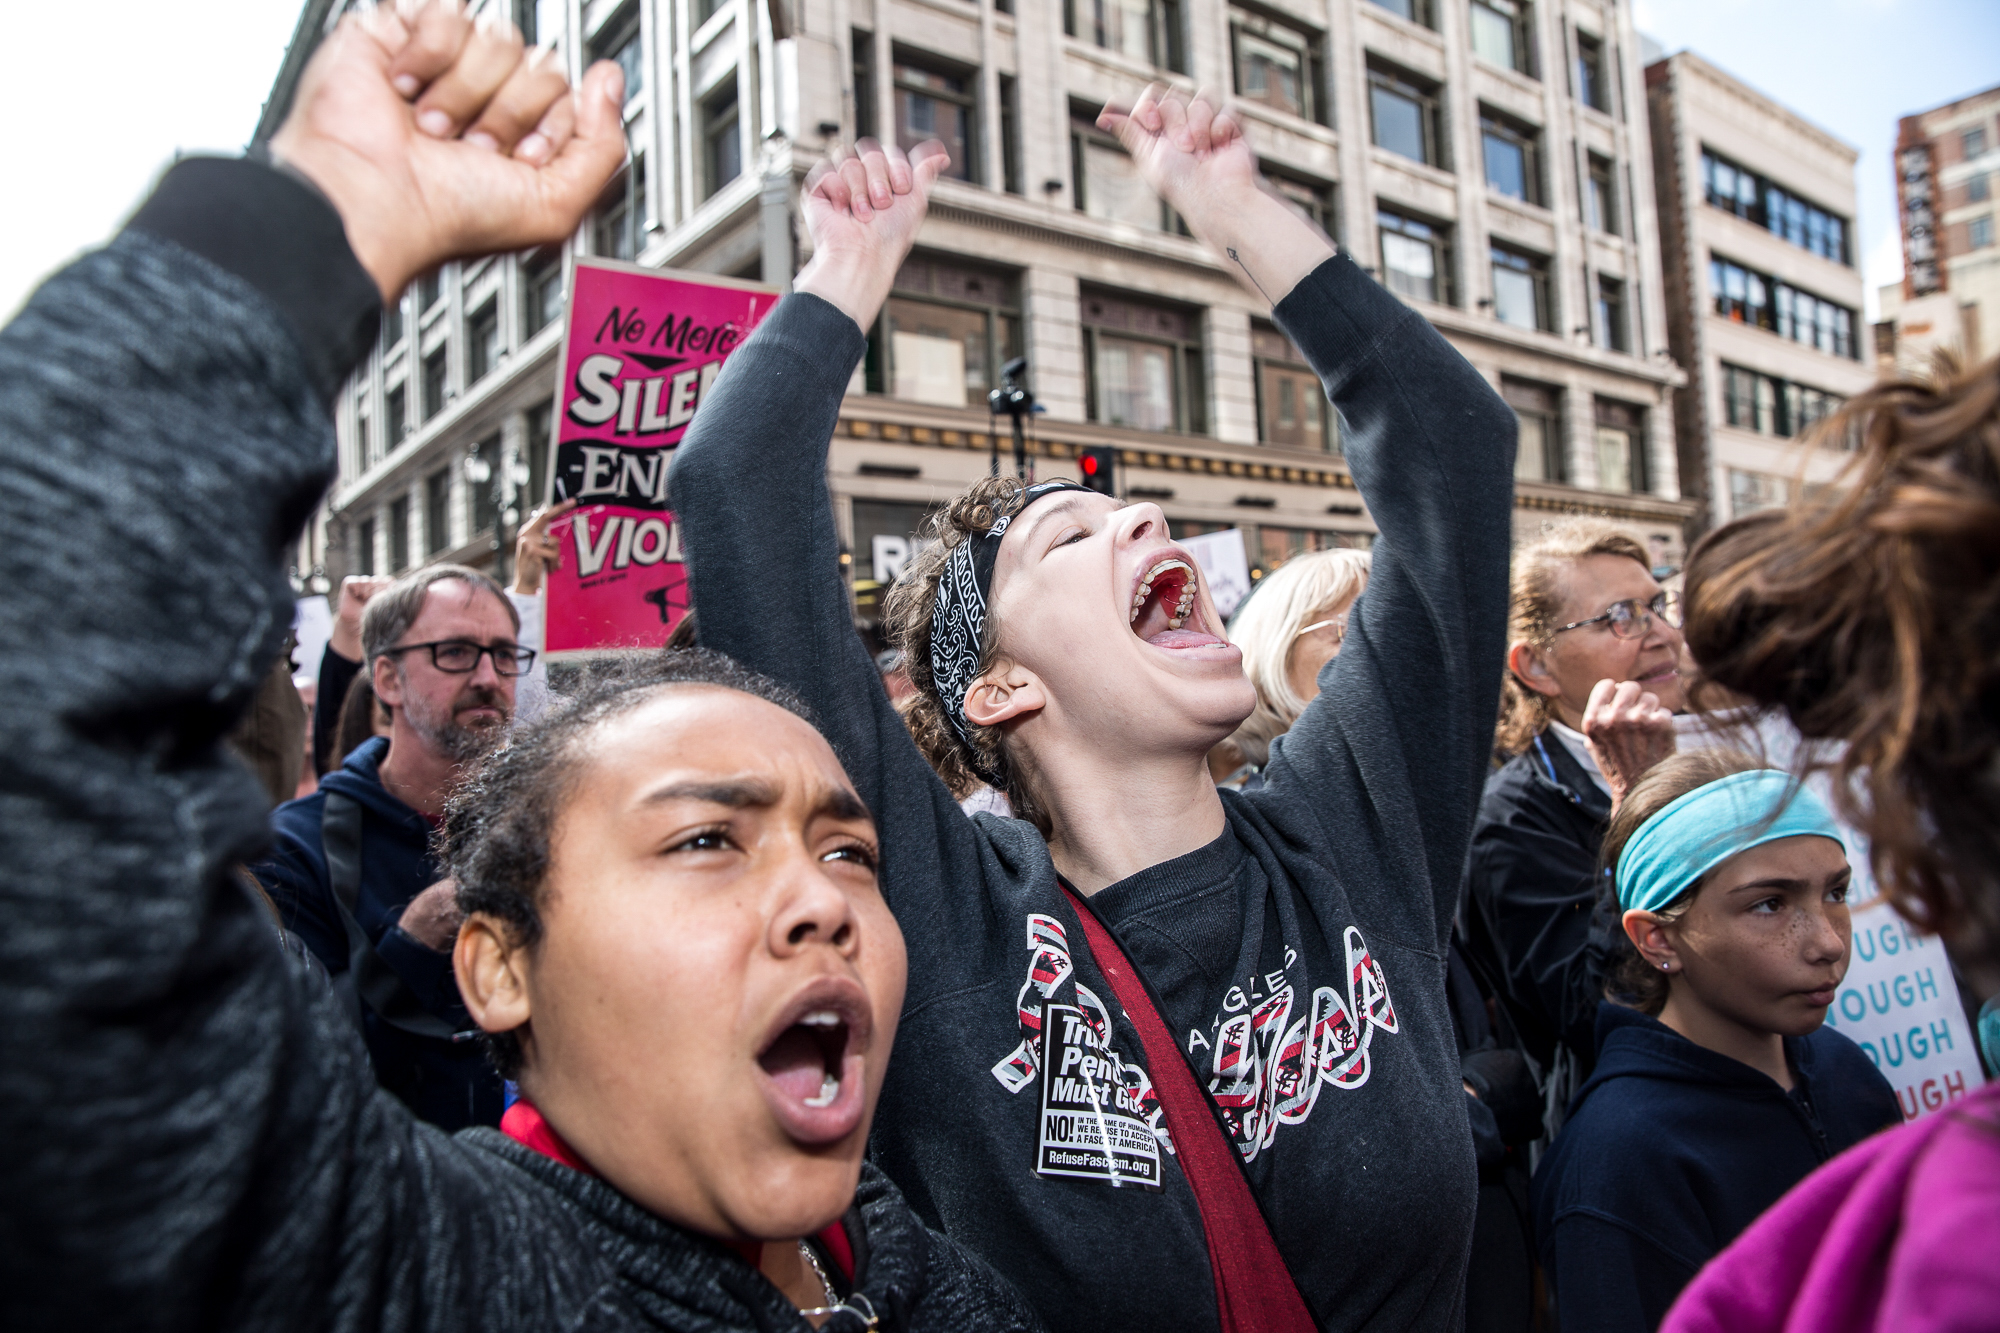 Alex Garcia (left) and Avery Dehart (right) cheer and shout with enthusiasm as they listen to guest speakers give their opinion on the lack of gun regulation in the U.S before protestors began their march toward city hall in downtown Los Angeles, California on Saturday, March 24 2018. The rally began near Pershing Square at 9 a.m. and the march moved to Grand Park, where there were speakers and performers. Speakers included students and survivors of previous mass shootings like Columbine, Las Vegas and the Seal Beach salon shooting.(Matthew Martin/Corsair Photo)